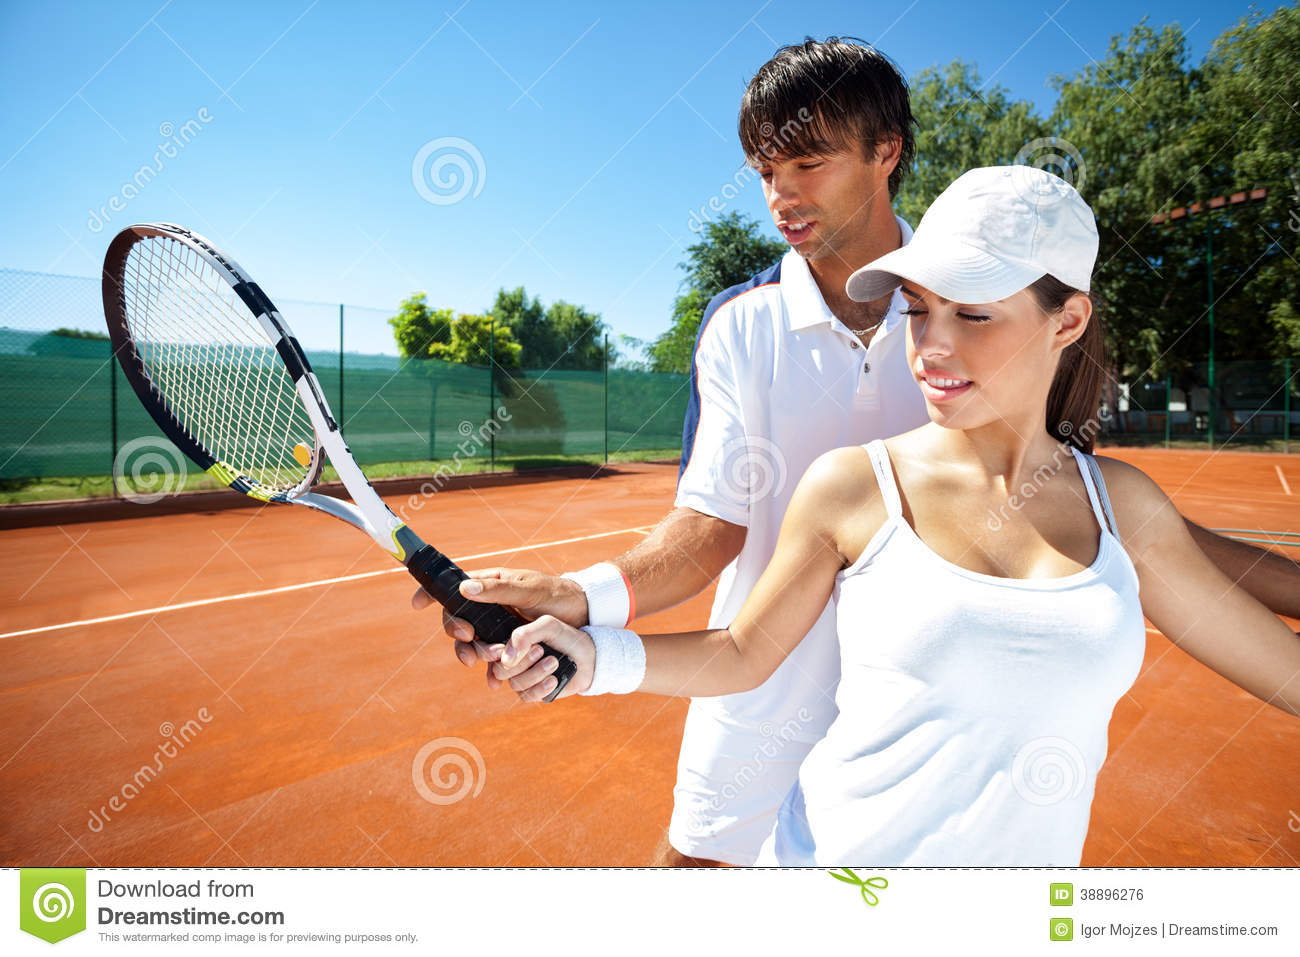 Tennis Teacher Giving Lesson Stock Photo | Getty Images